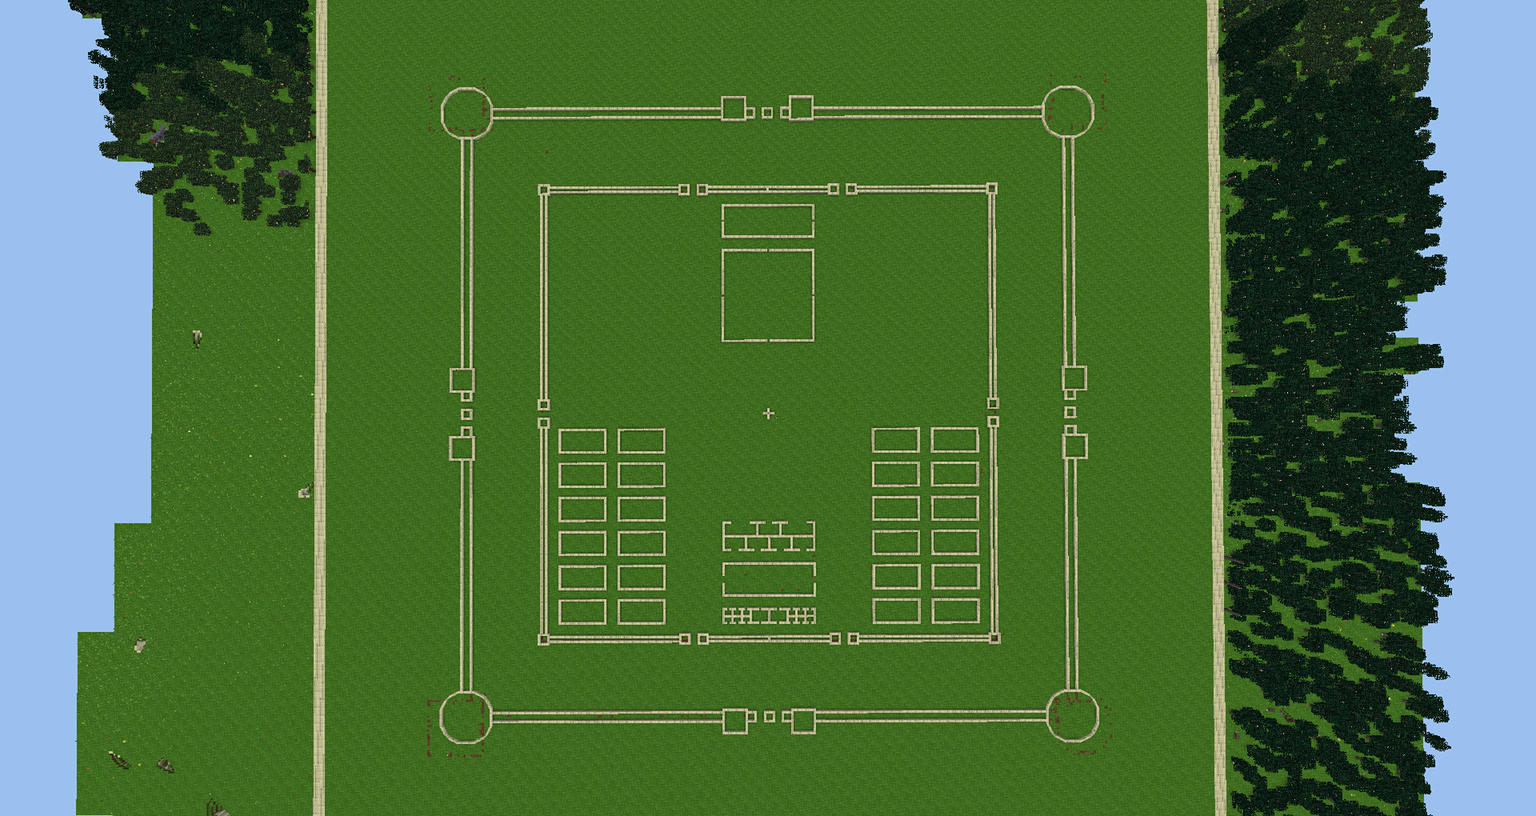 GarissonFloorPlan.jpg